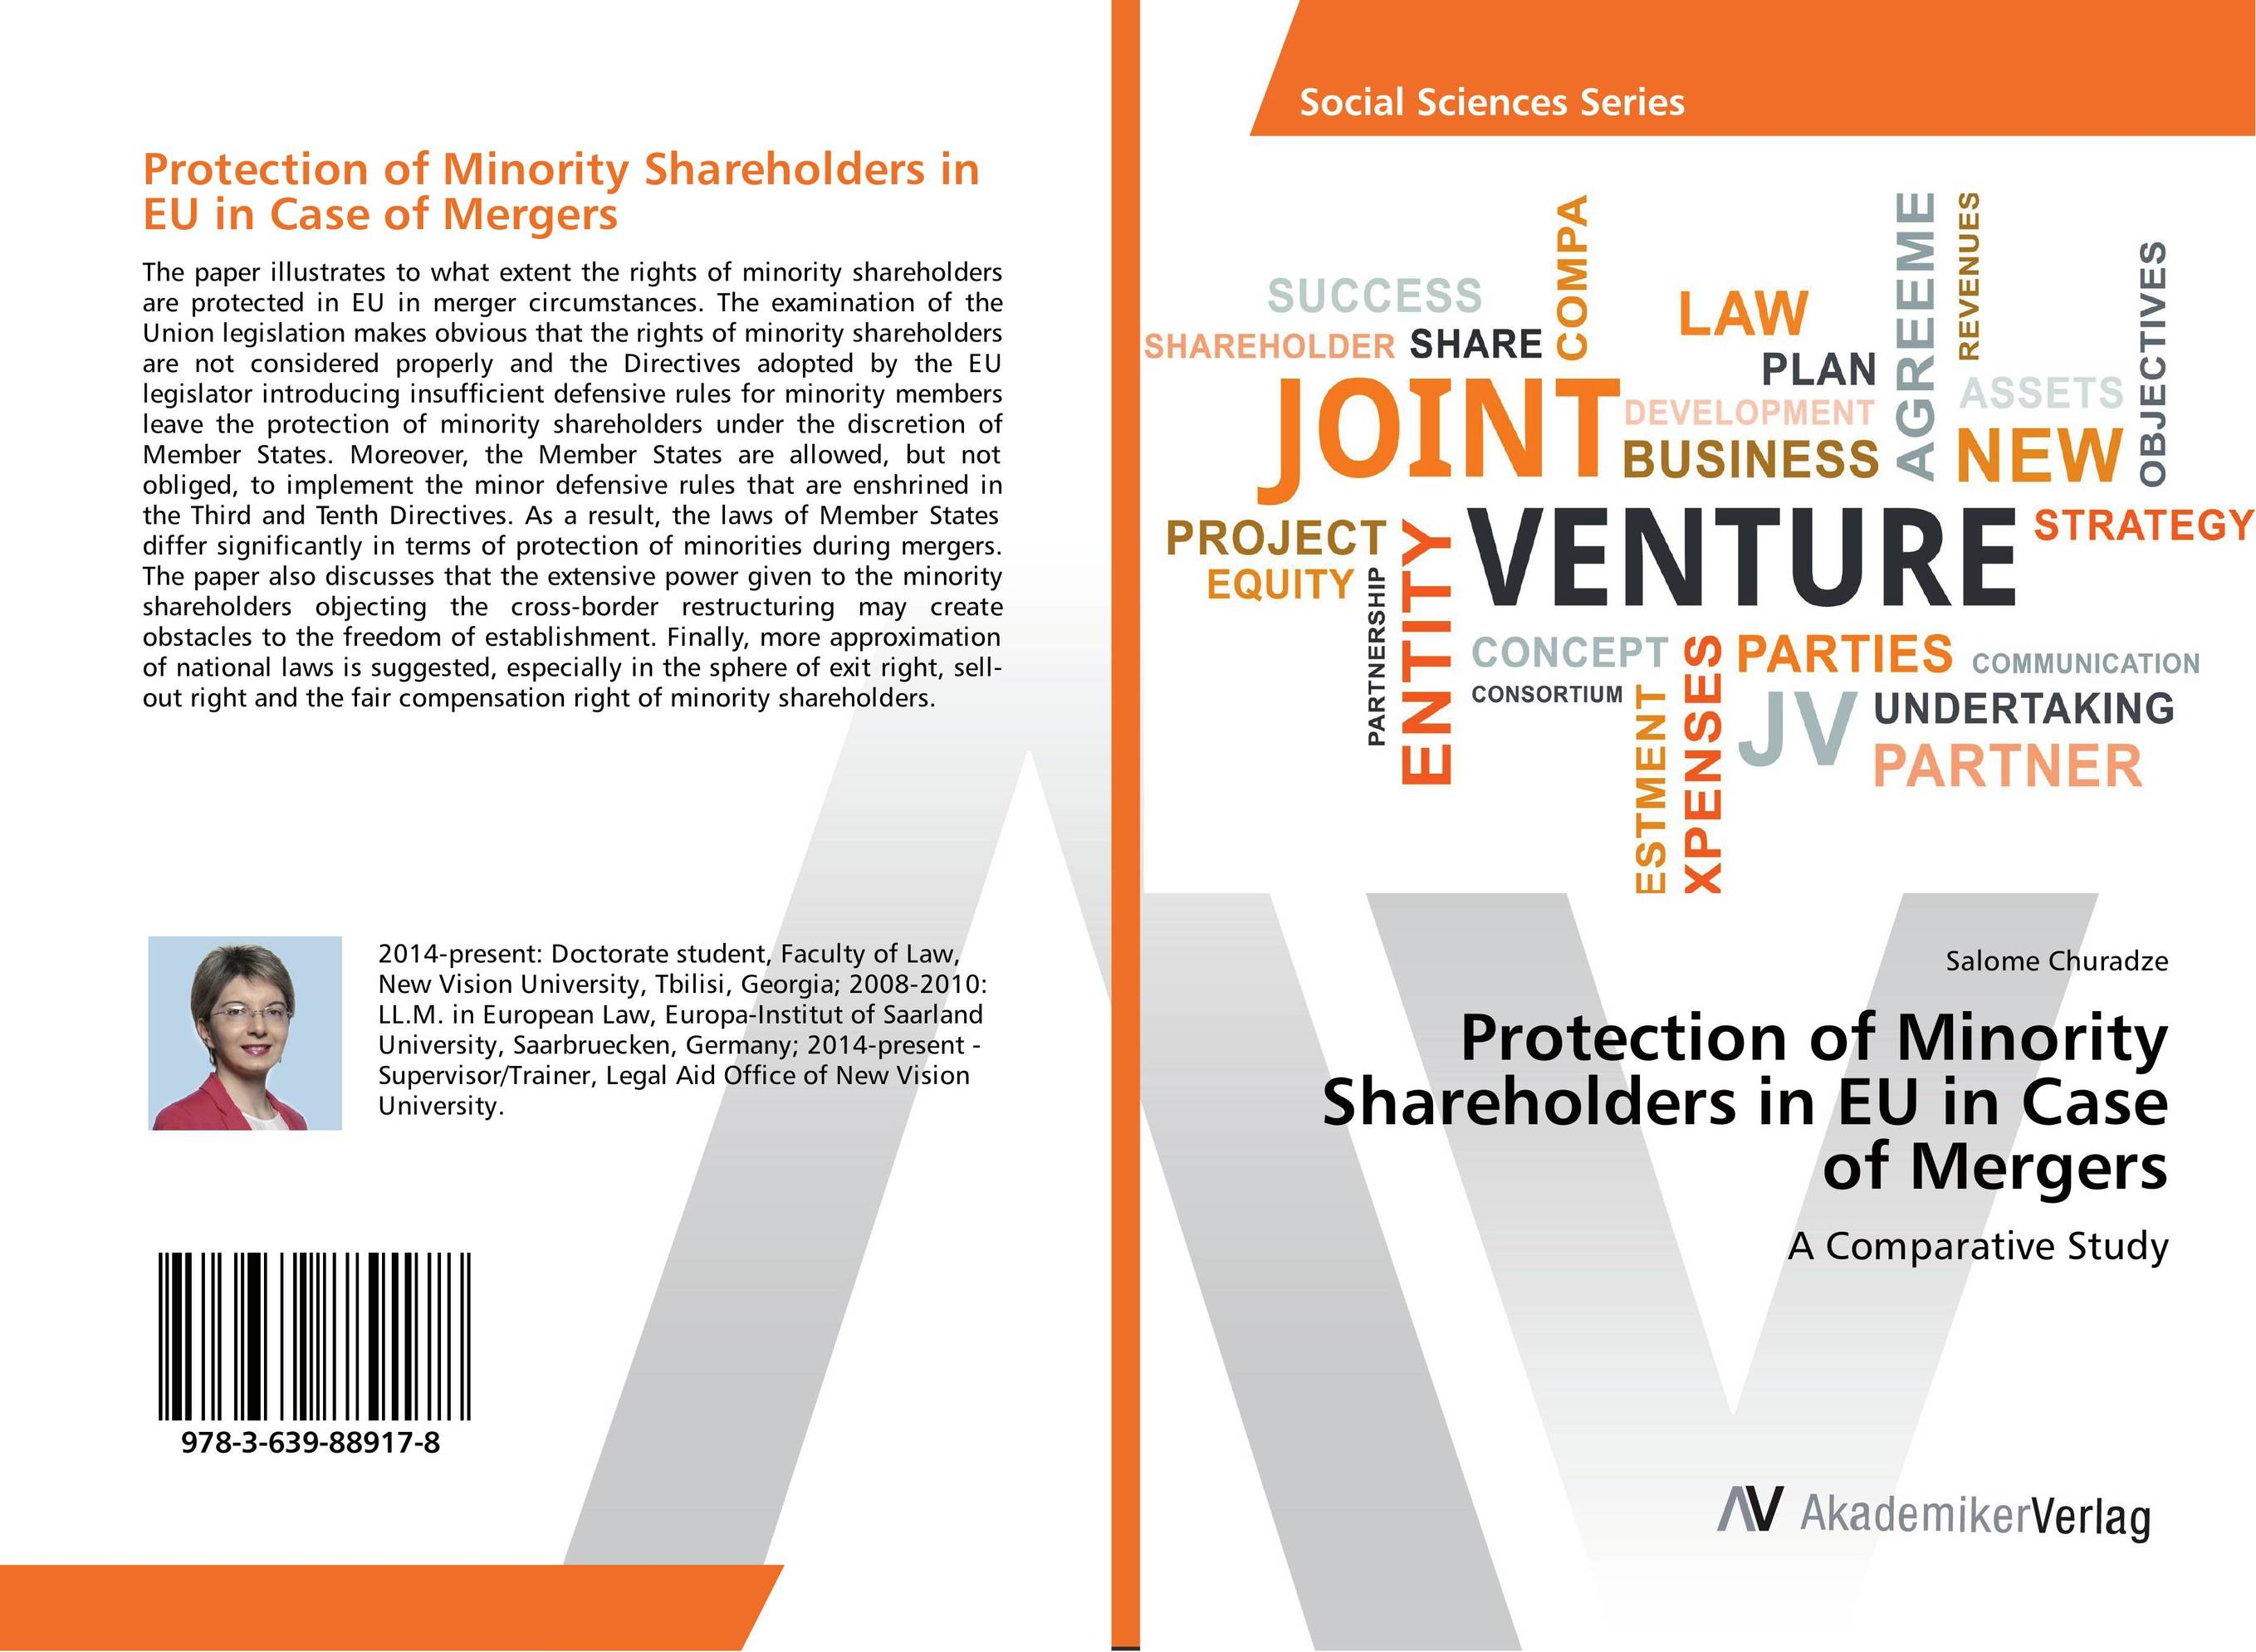 Protection of Minority Shareholders in EU in Case of Mergers